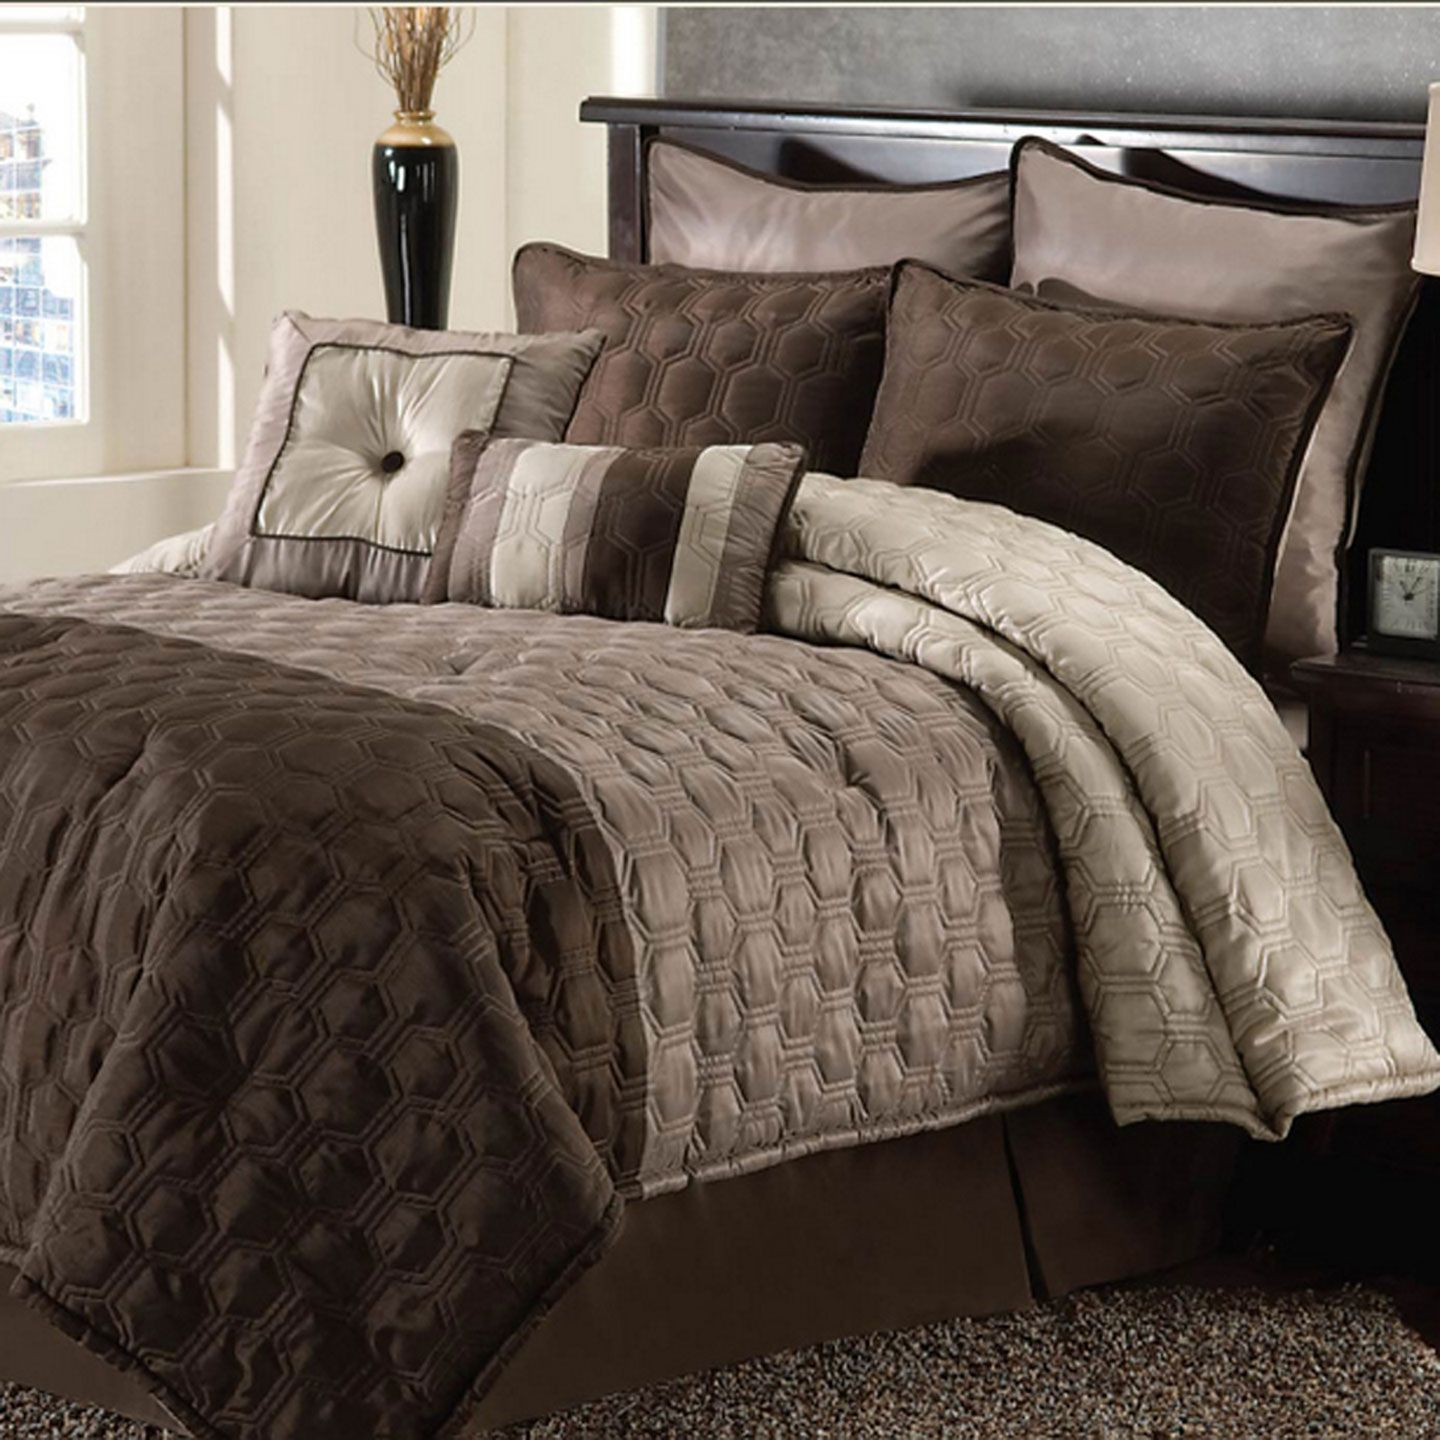 Master Bryan Keith Hamilton Eight Piece Comforter Set In Taupe And Chocolate Item Clahml8csn Brown Comforter Bedroom Comforter Sets Brown Comforter Sets